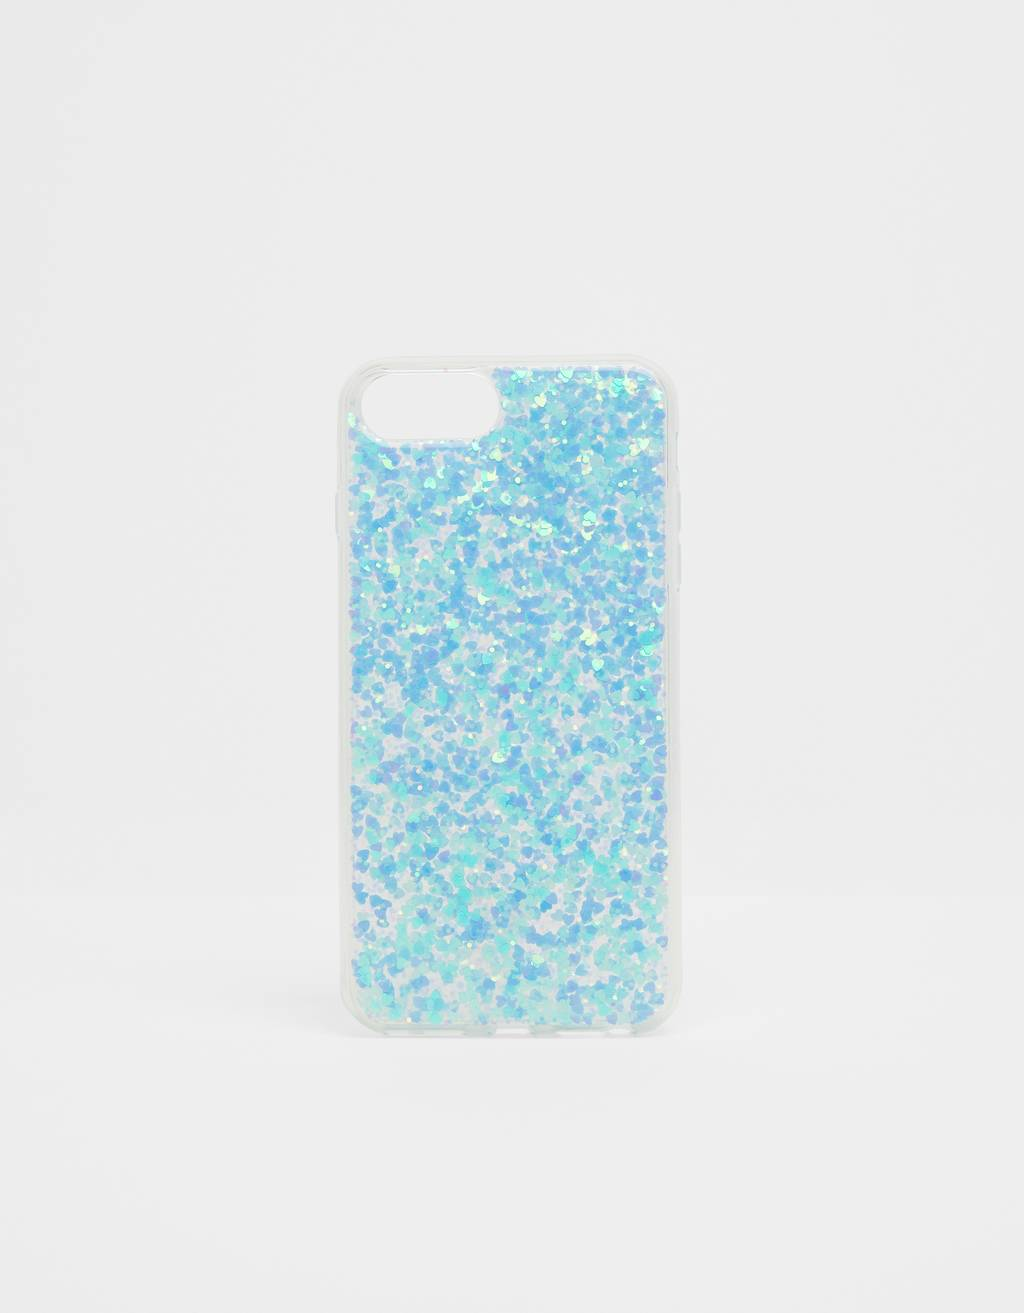 Capa glitter iPhone 6 plus/6S plus/7 plus/8 plus